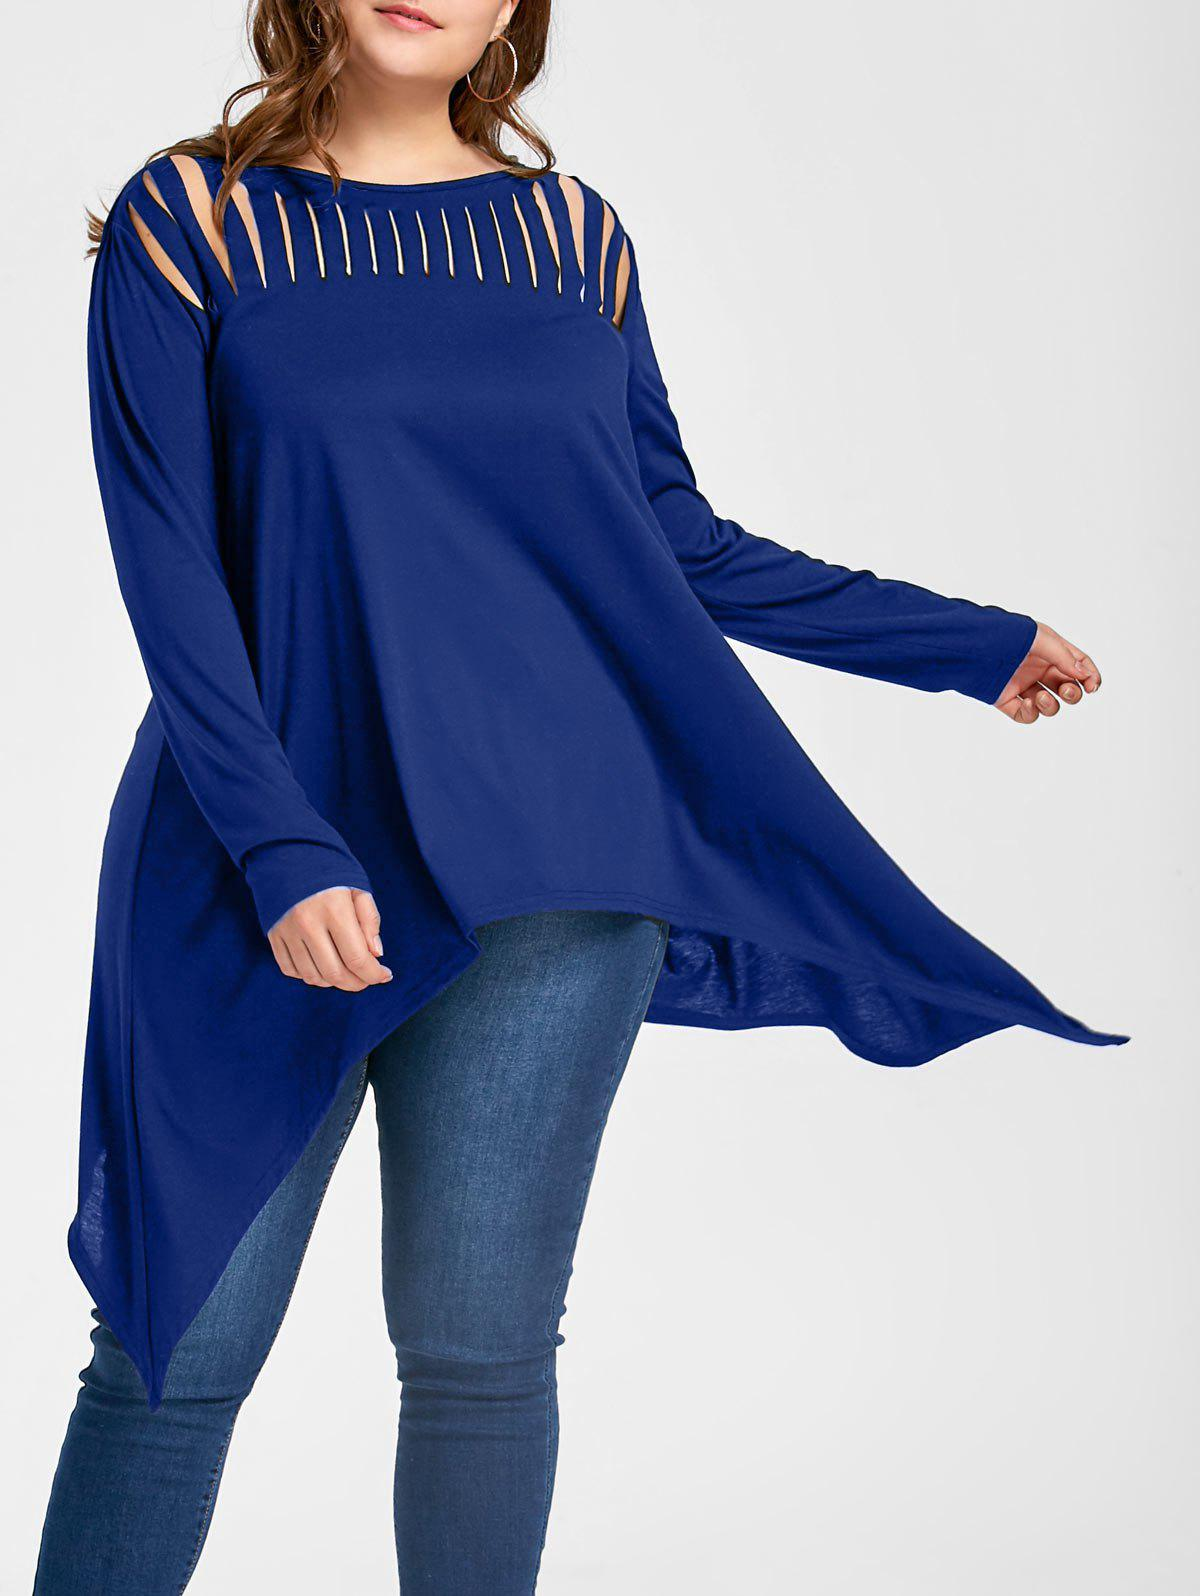 Plus Size Ripped Crescent Hem Tunic TopWOMEN<br><br>Size: 4XL; Color: BLUE; Material: Polyester,Spandex; Shirt Length: Long; Sleeve Length: Full; Collar: Slash Neck; Style: Casual; Season: Fall,Spring; Pattern Type: Solid; Weight: 0.3300kg; Package Contents: 1 x Top;